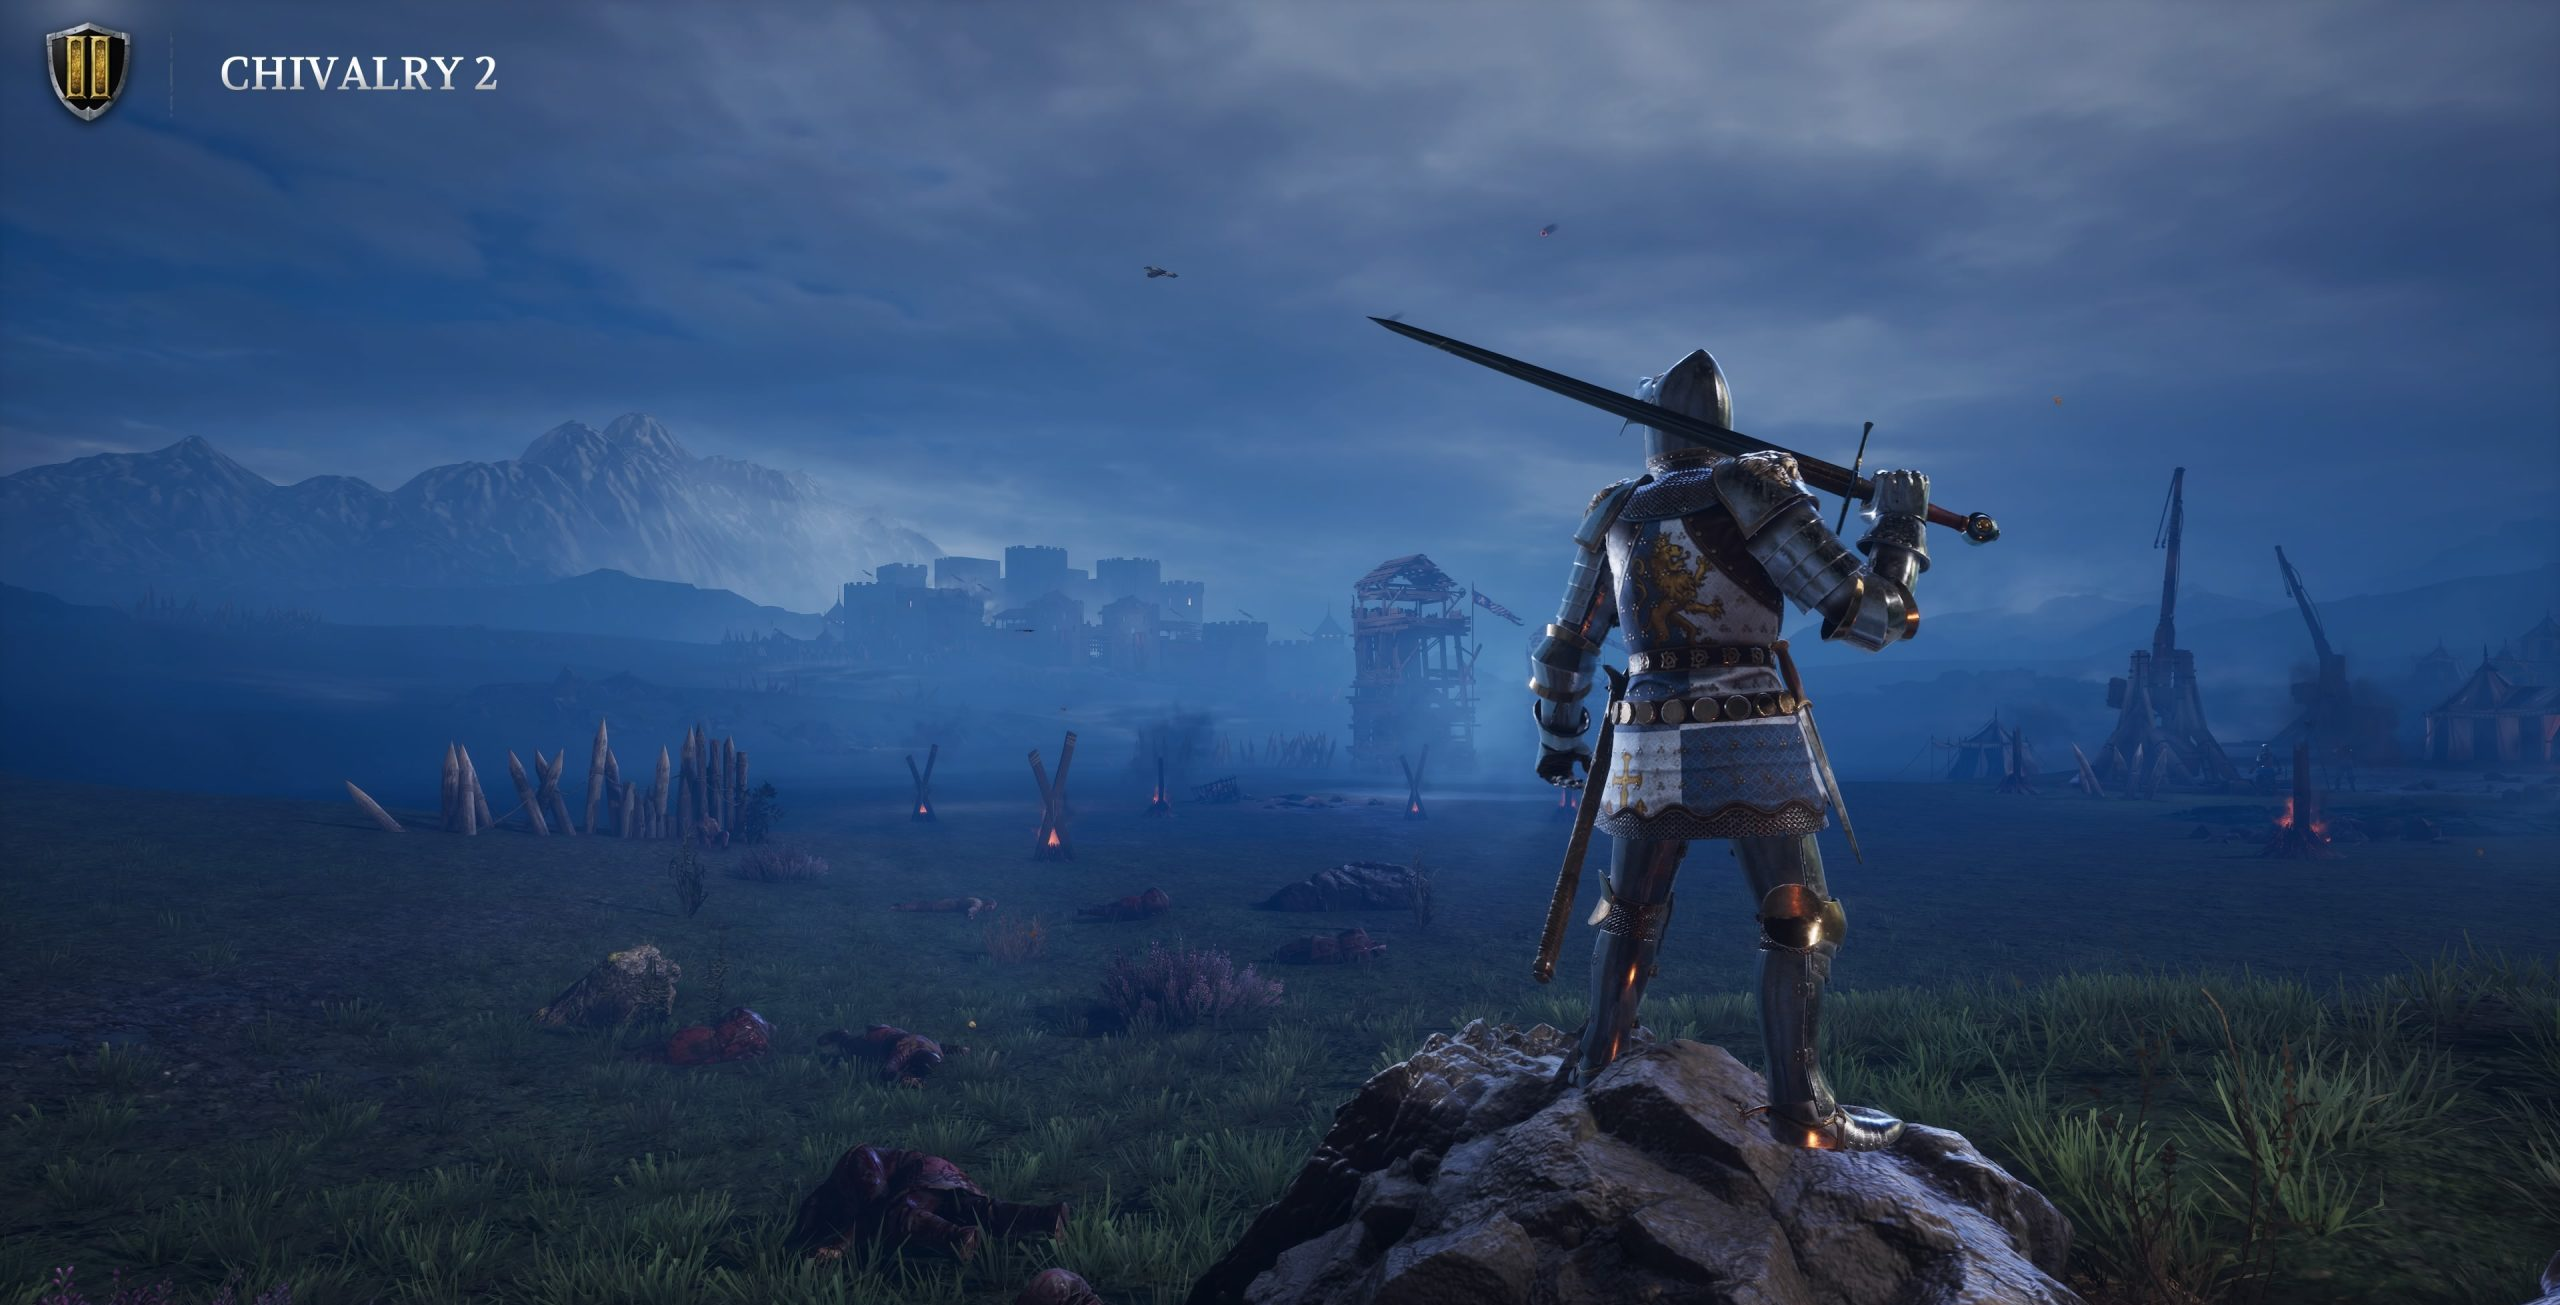 Review: Chivalry 2